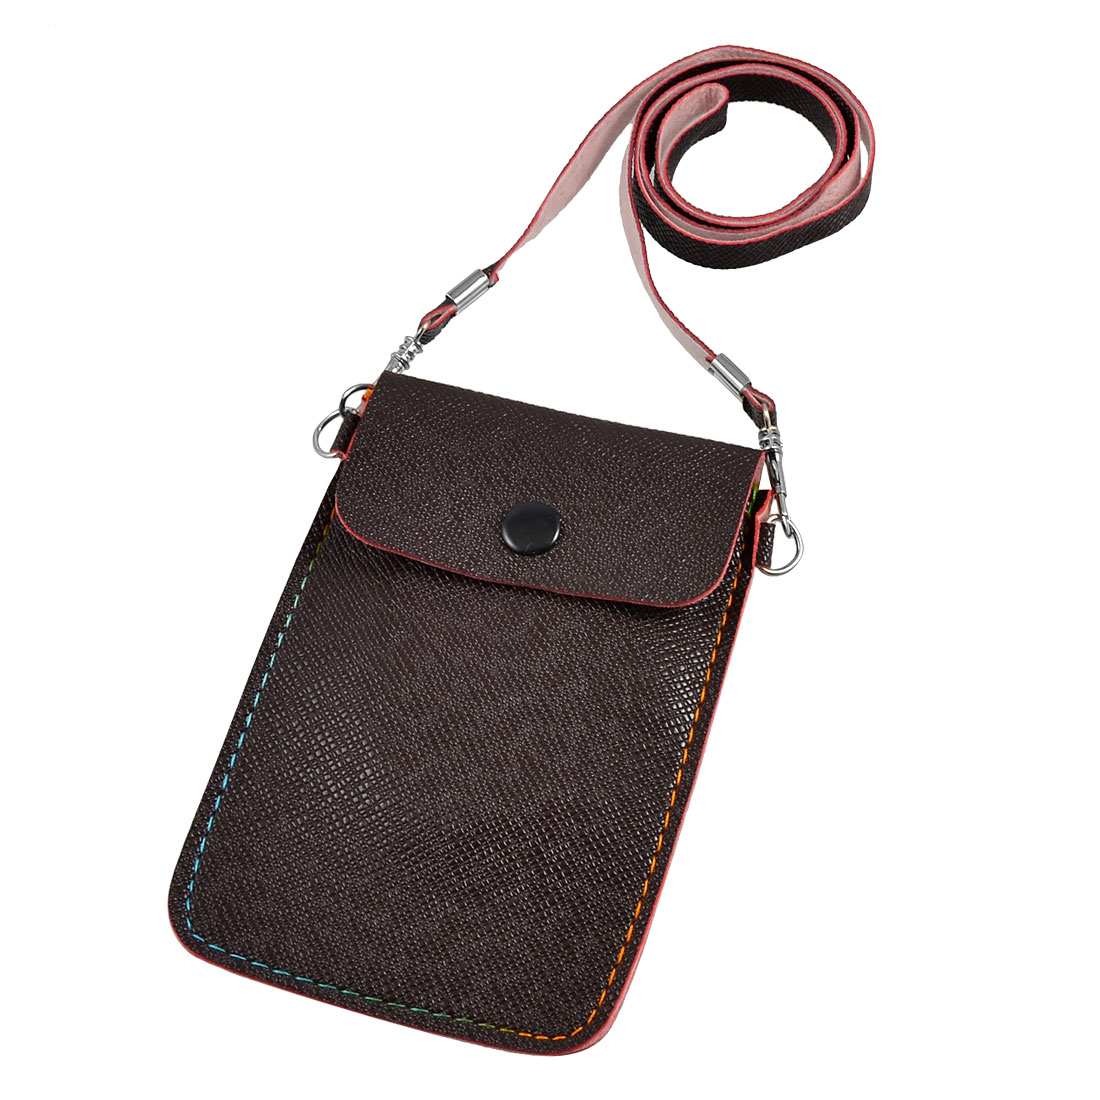 Dark Brown Rectangle PVC Faux Leather Pouch Bag for Cell Phone Mp3 MP4